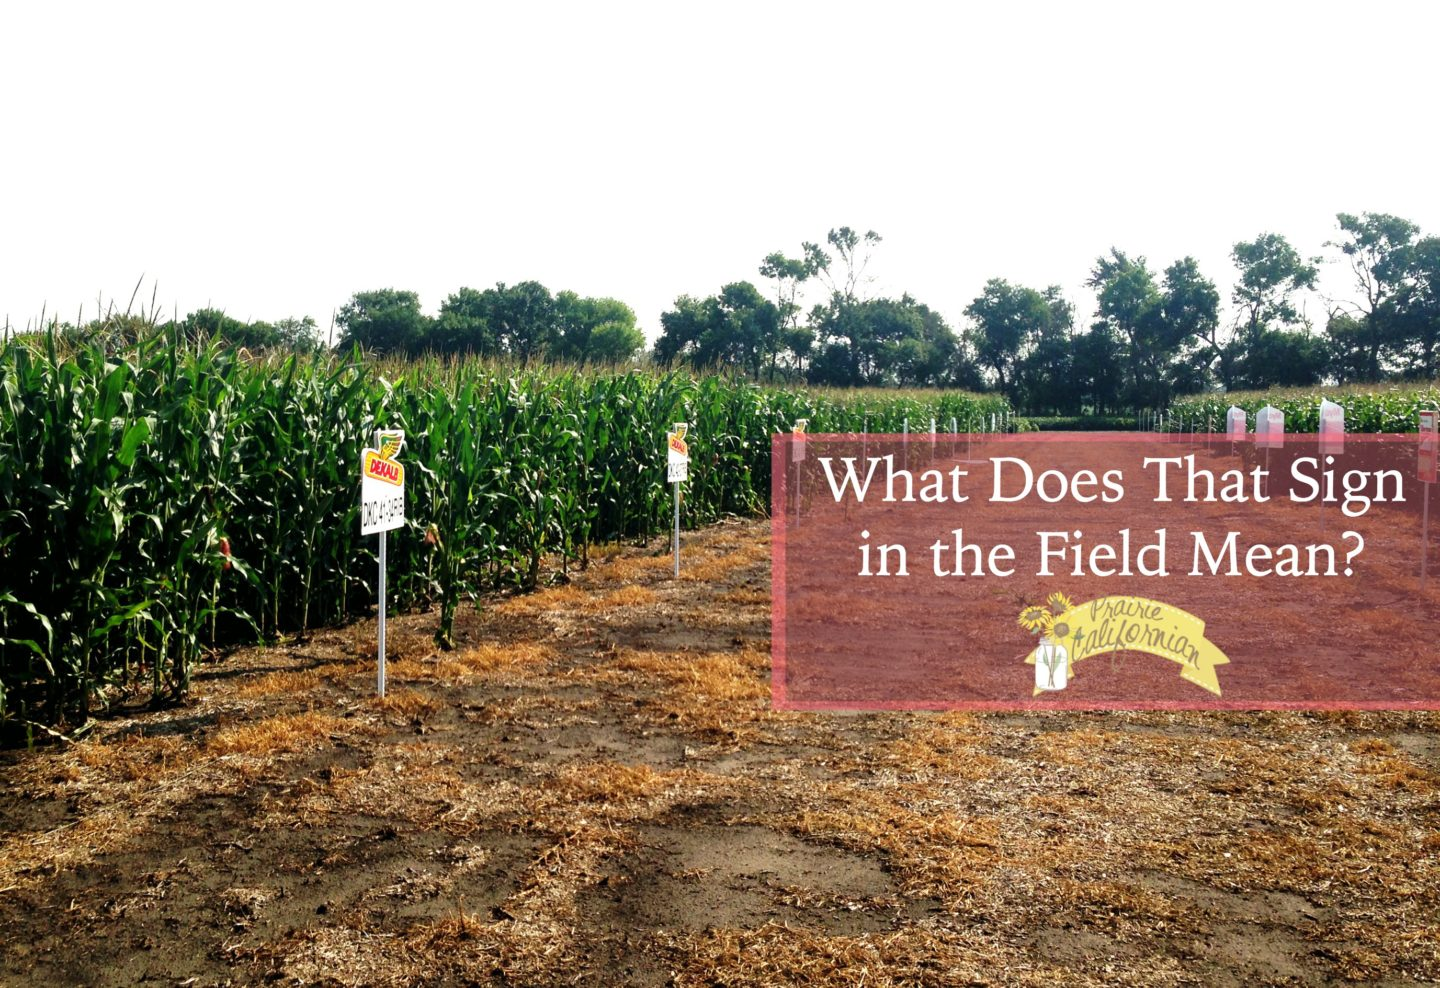 What Does That Sign in the Field Mean?